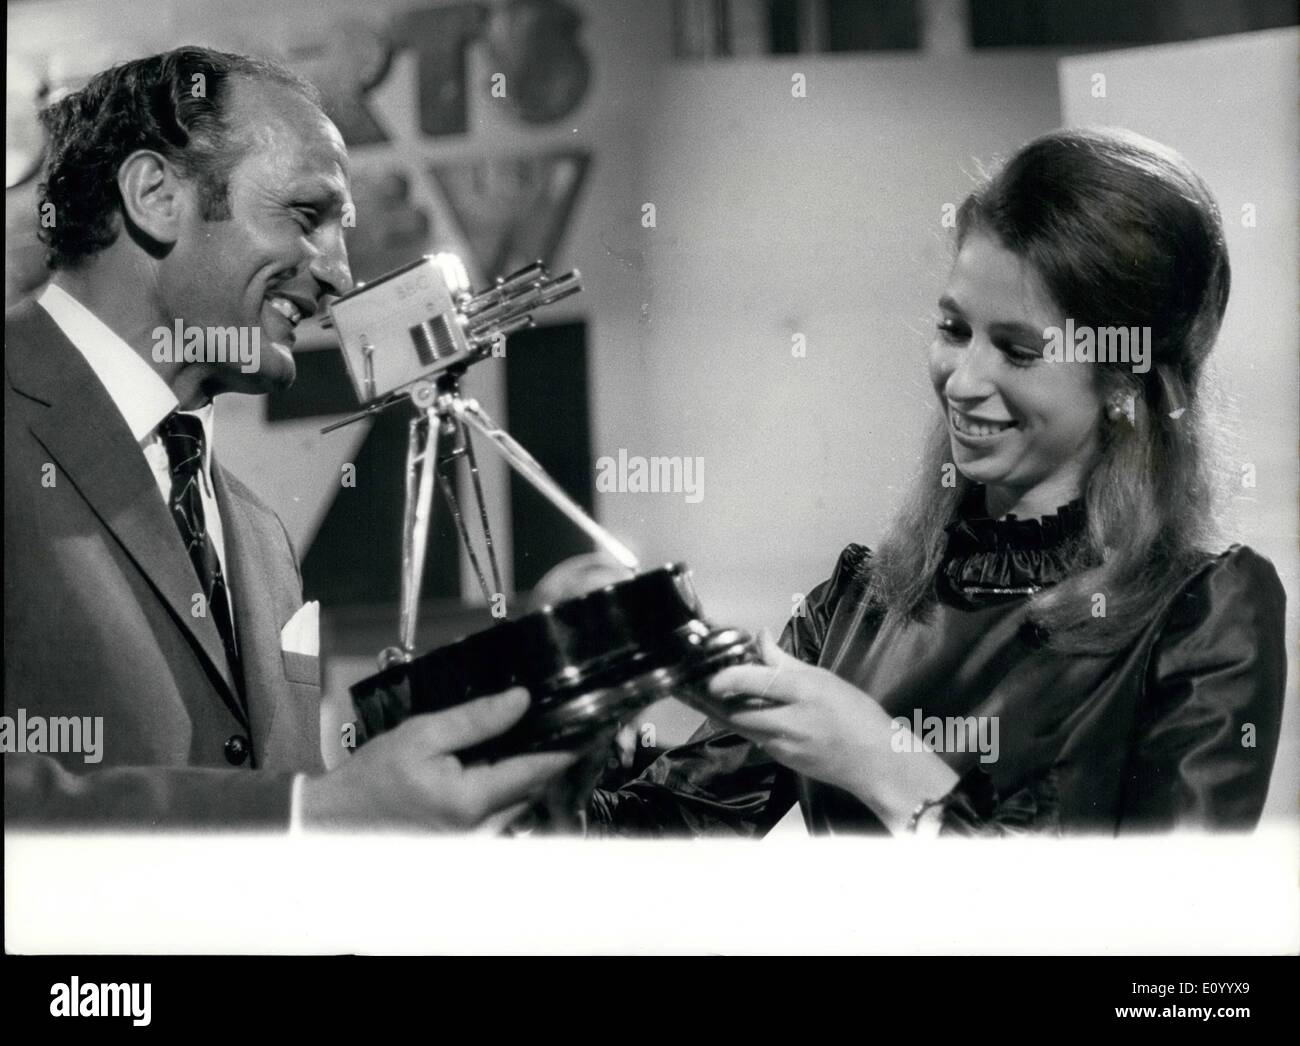 Dec. 12, 1971 - Princess Anne Receives BBC Sports Award: Princess Ann receives the British Broadcasting Corporation's ''Sports Personality of the Year'' Award, fro forker heavyweight boxer Henry Cooper, before millions of television viewers, at the BBC Theatre in London last night. - Stock Image